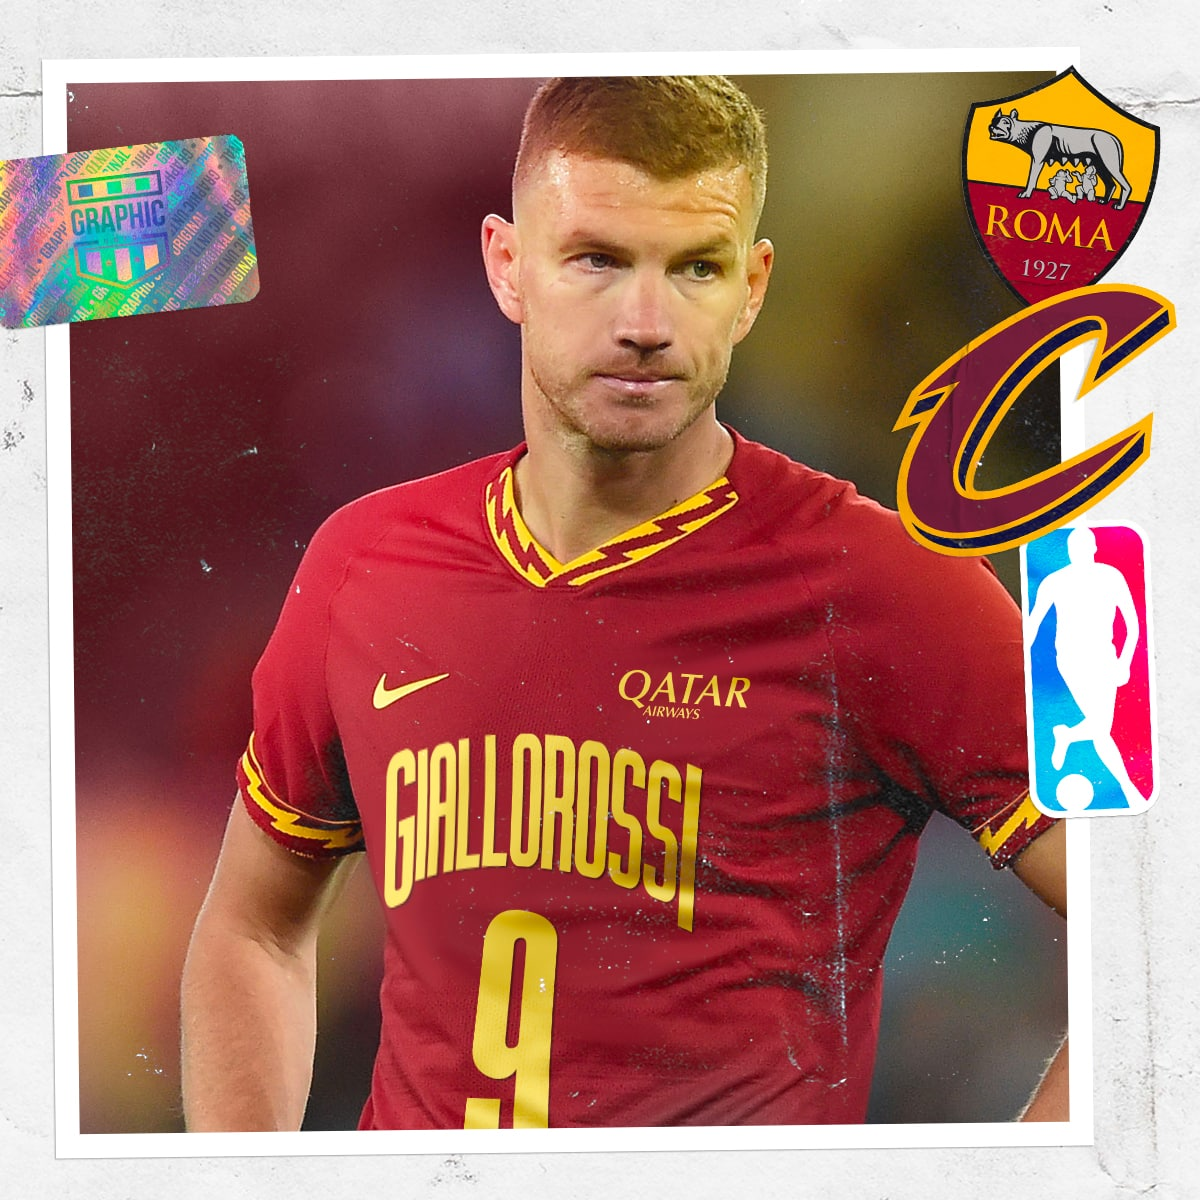 maillot-foot-nba-graphic-untd-as-roma-cleveland-cavaliers